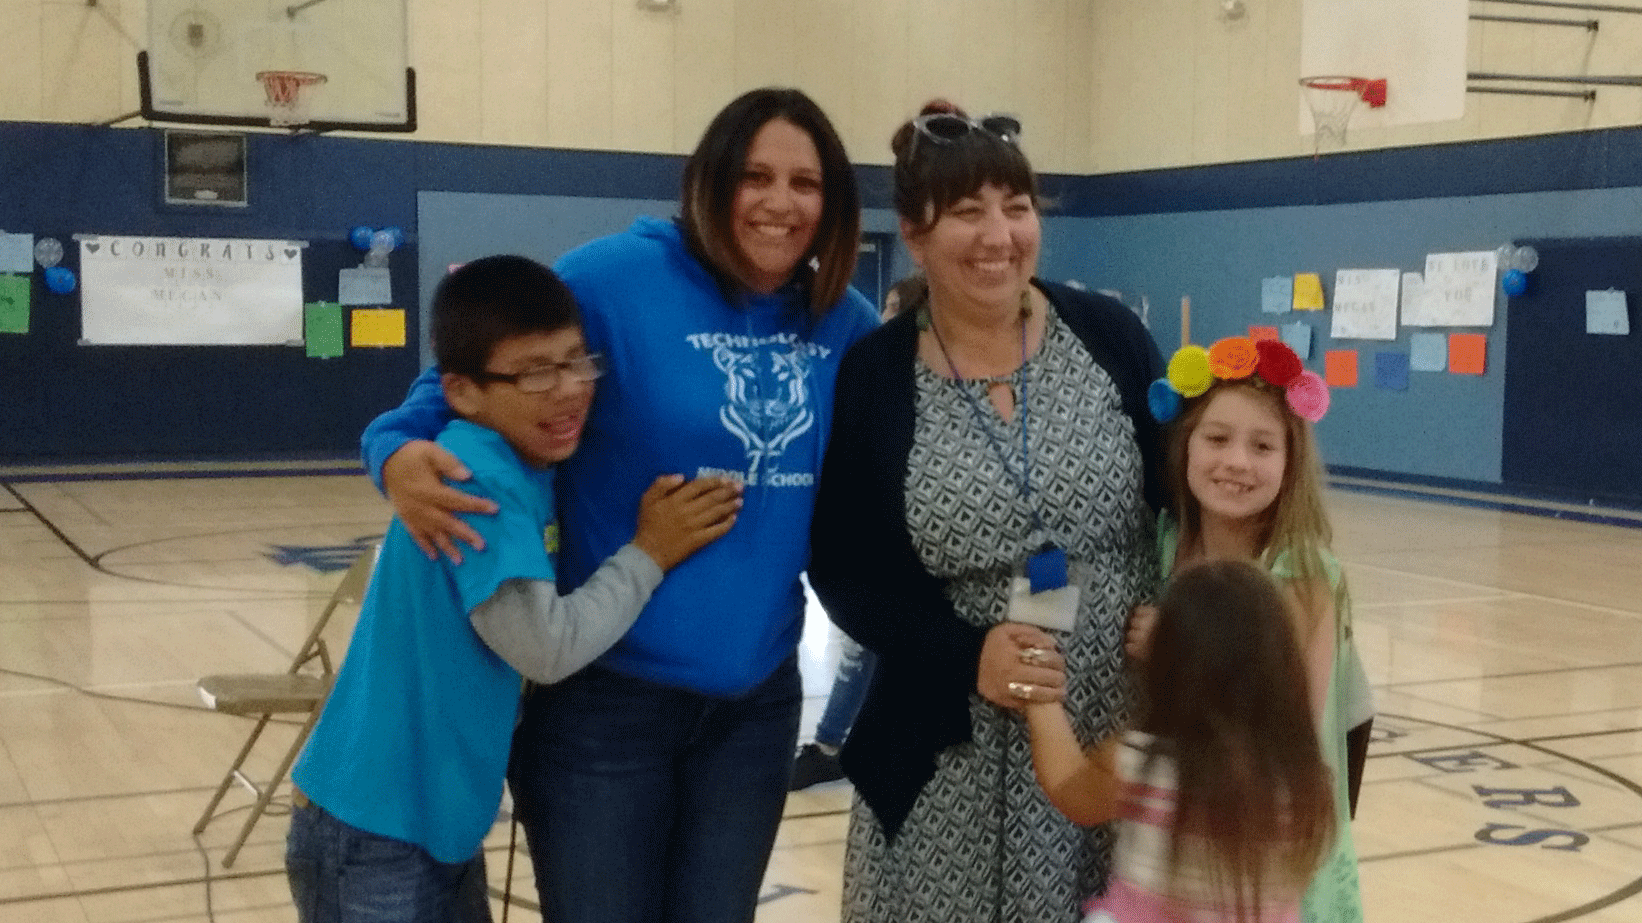 Mrs. Lesser, her daughters, the principal, and a student stand together